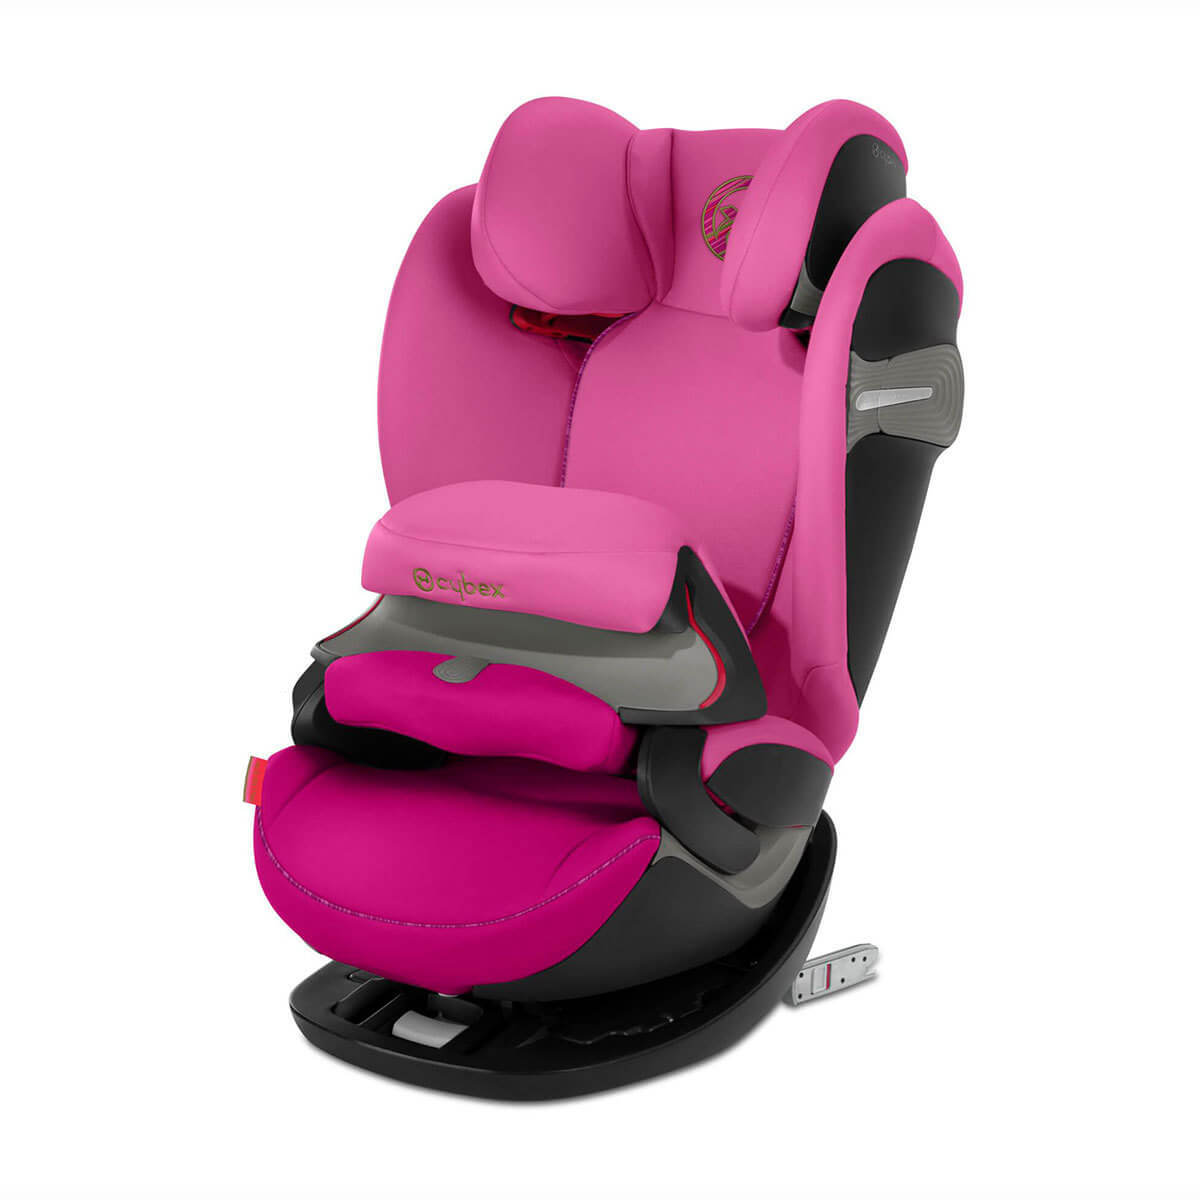 Cybex Pallas S-Fix Автокресло Cybex Pallas S-Fix Fancy Pink Cybex-Pallas-S-Fix-Fancy-Pink.jpg